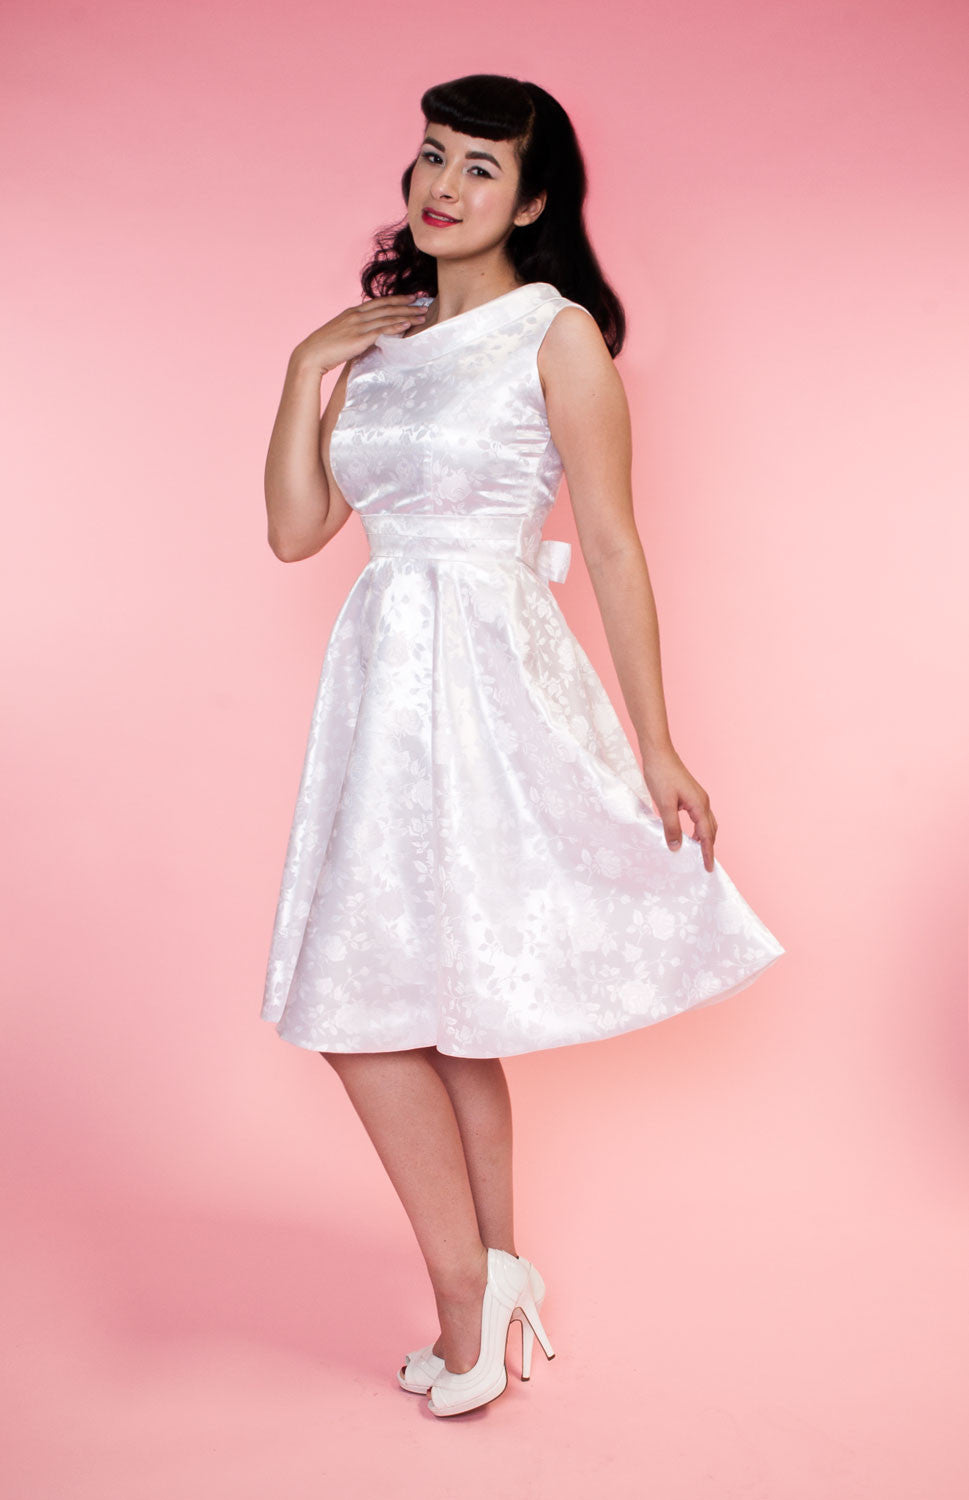 BP Suzette Dress - Pearl Embossed Floral - Heart of Haute  - 10